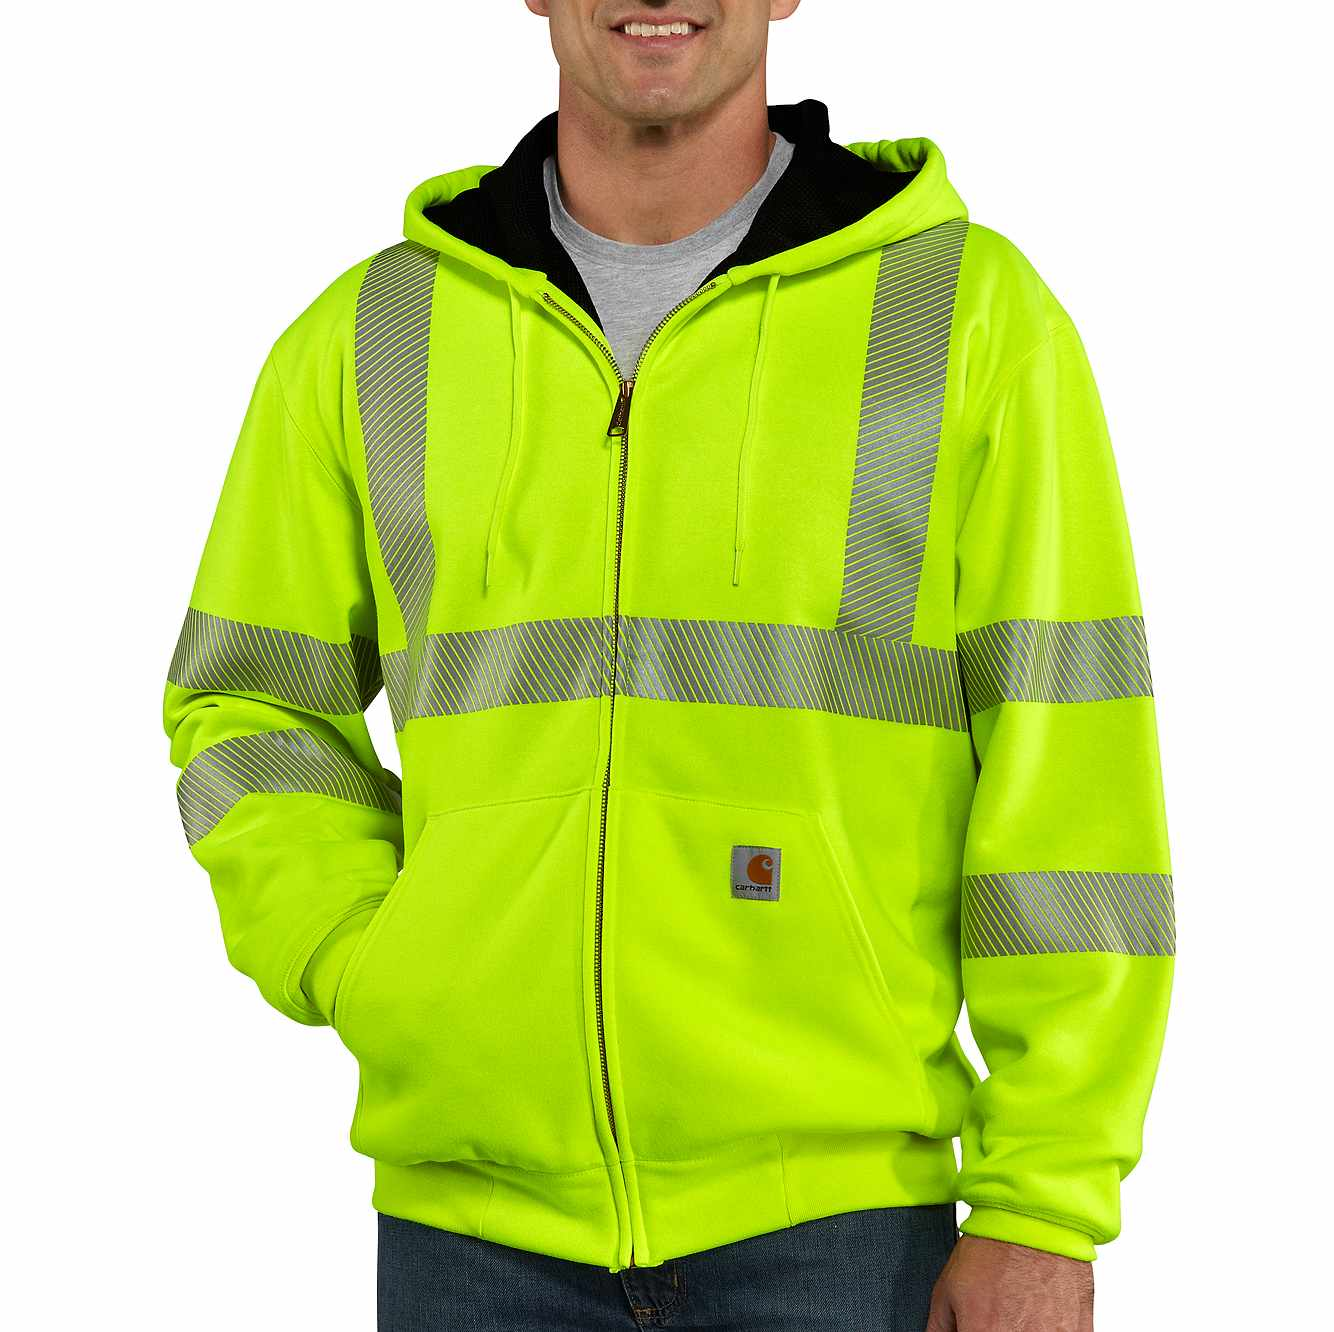 Vis Insulated Safety Trouser Pant Orange and Lime ROAD WORK HIGH VISIBILITY US